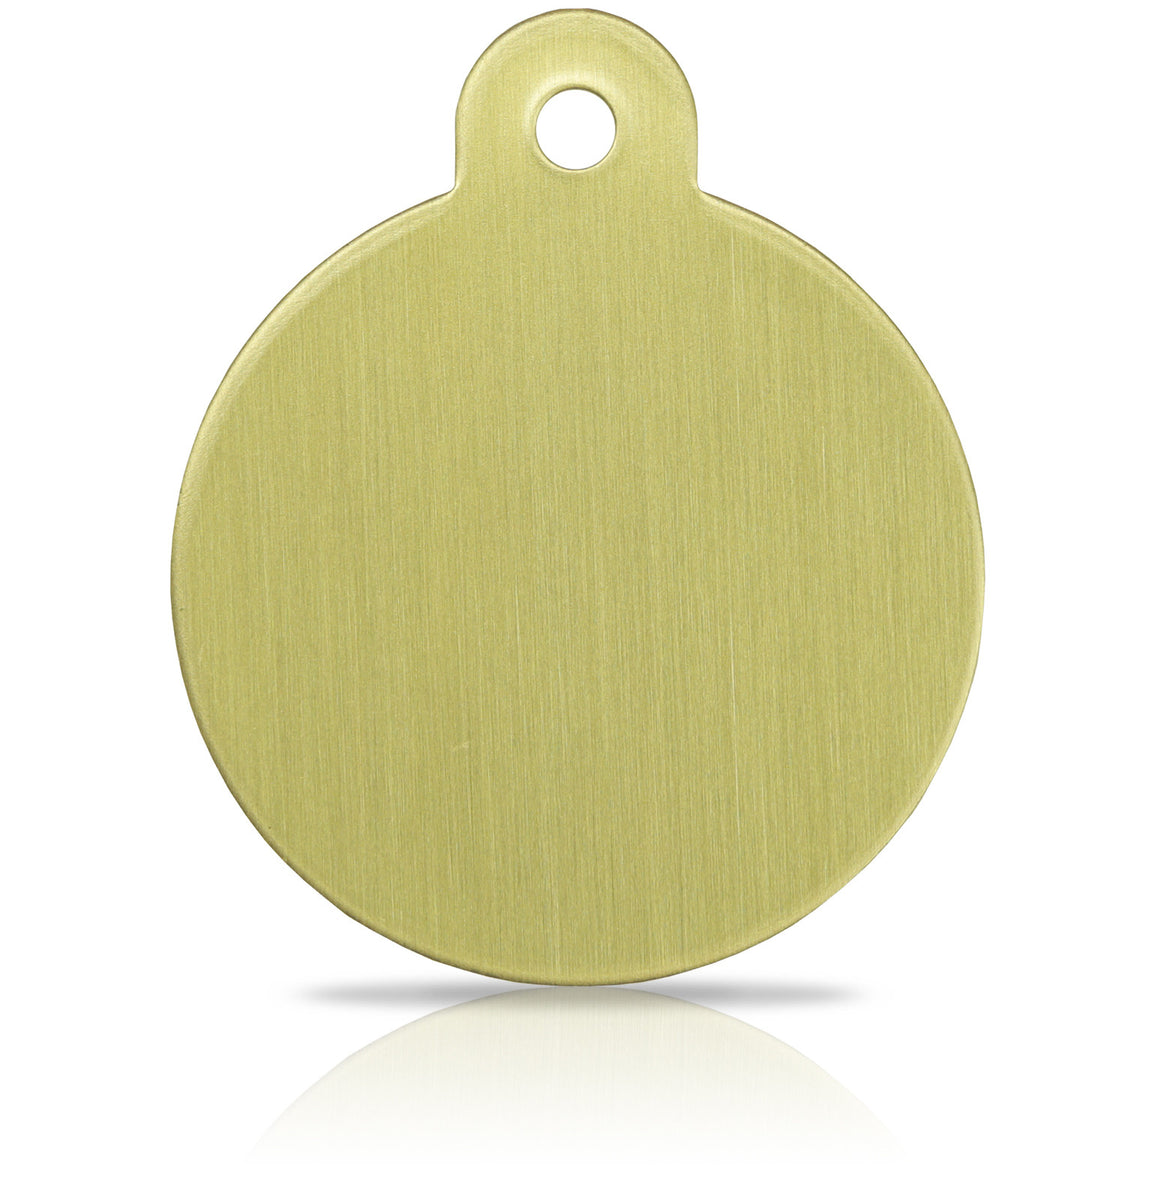 TaggIT Brass Series Large Disc Dog Tag Pet Tag iMarc Tag